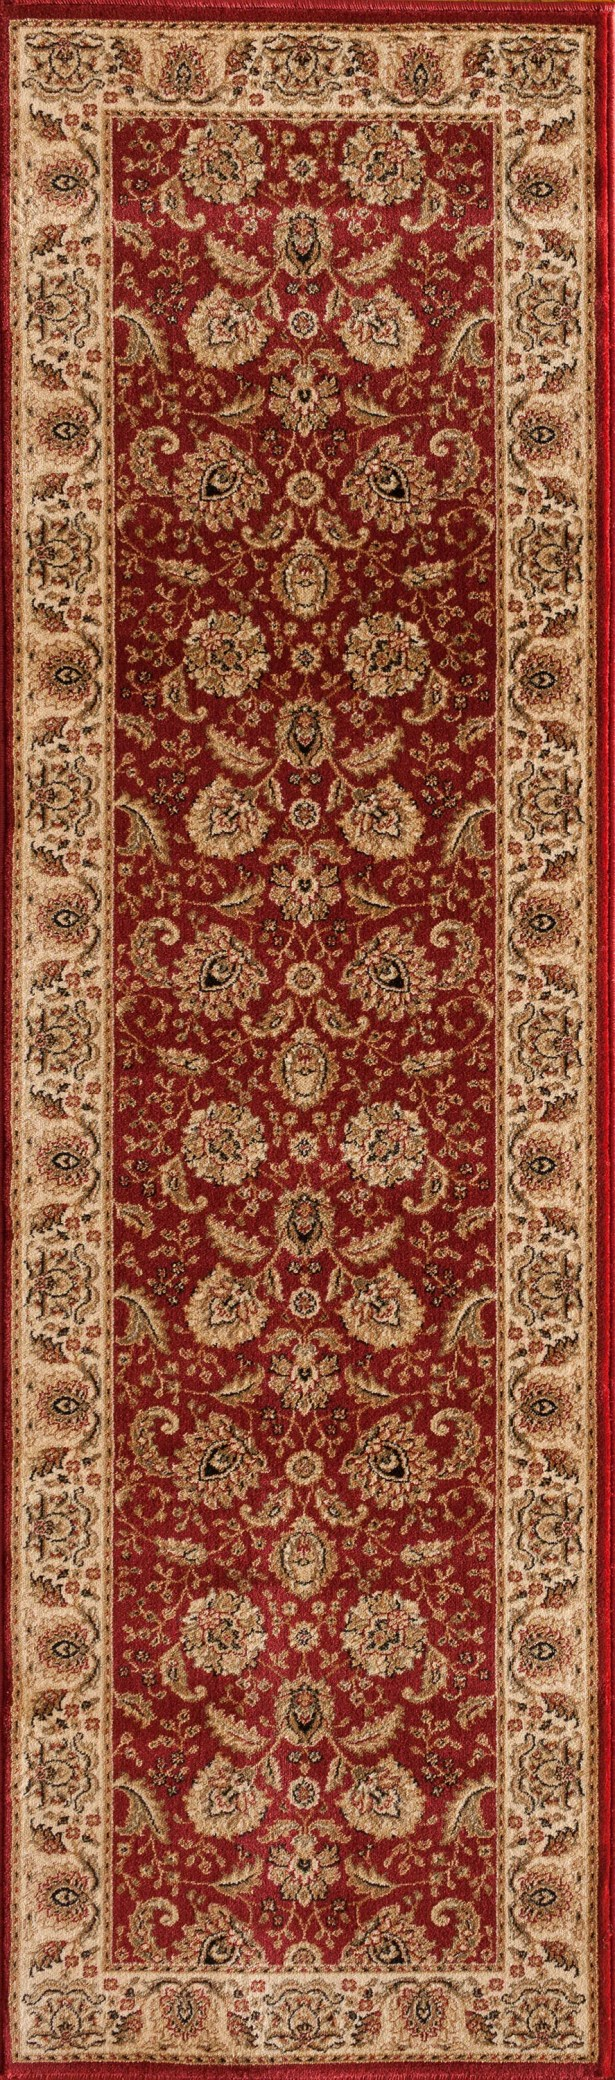 Dexter Red Area Rug Rug Size: Rectangle 5'3